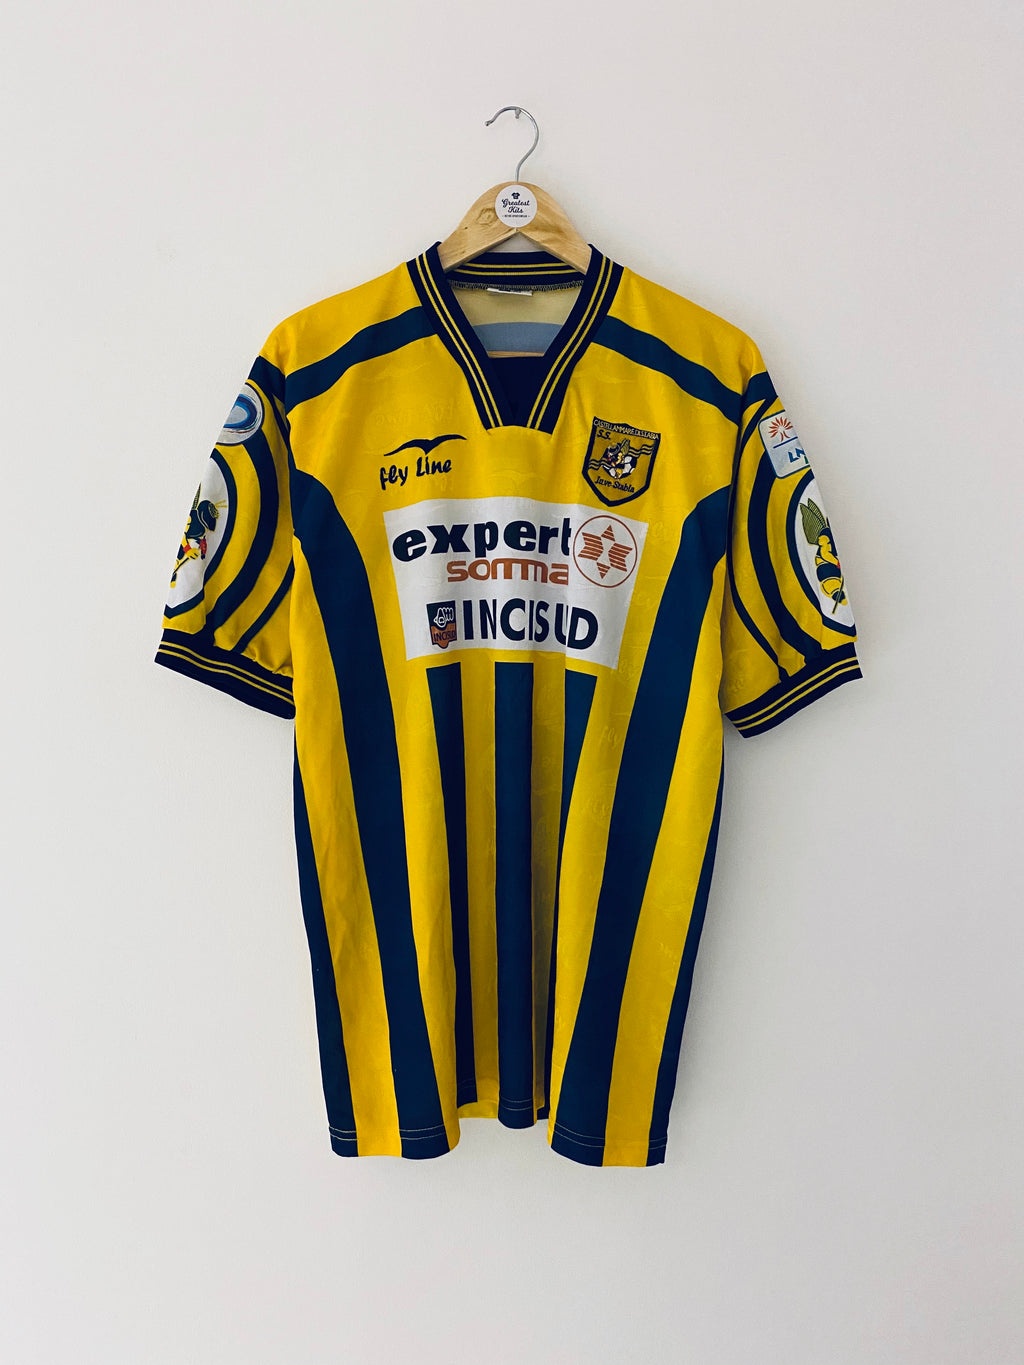 2003/04 Juve Stabia *Match Issue* Home Shirt #6 (XL) 9/10